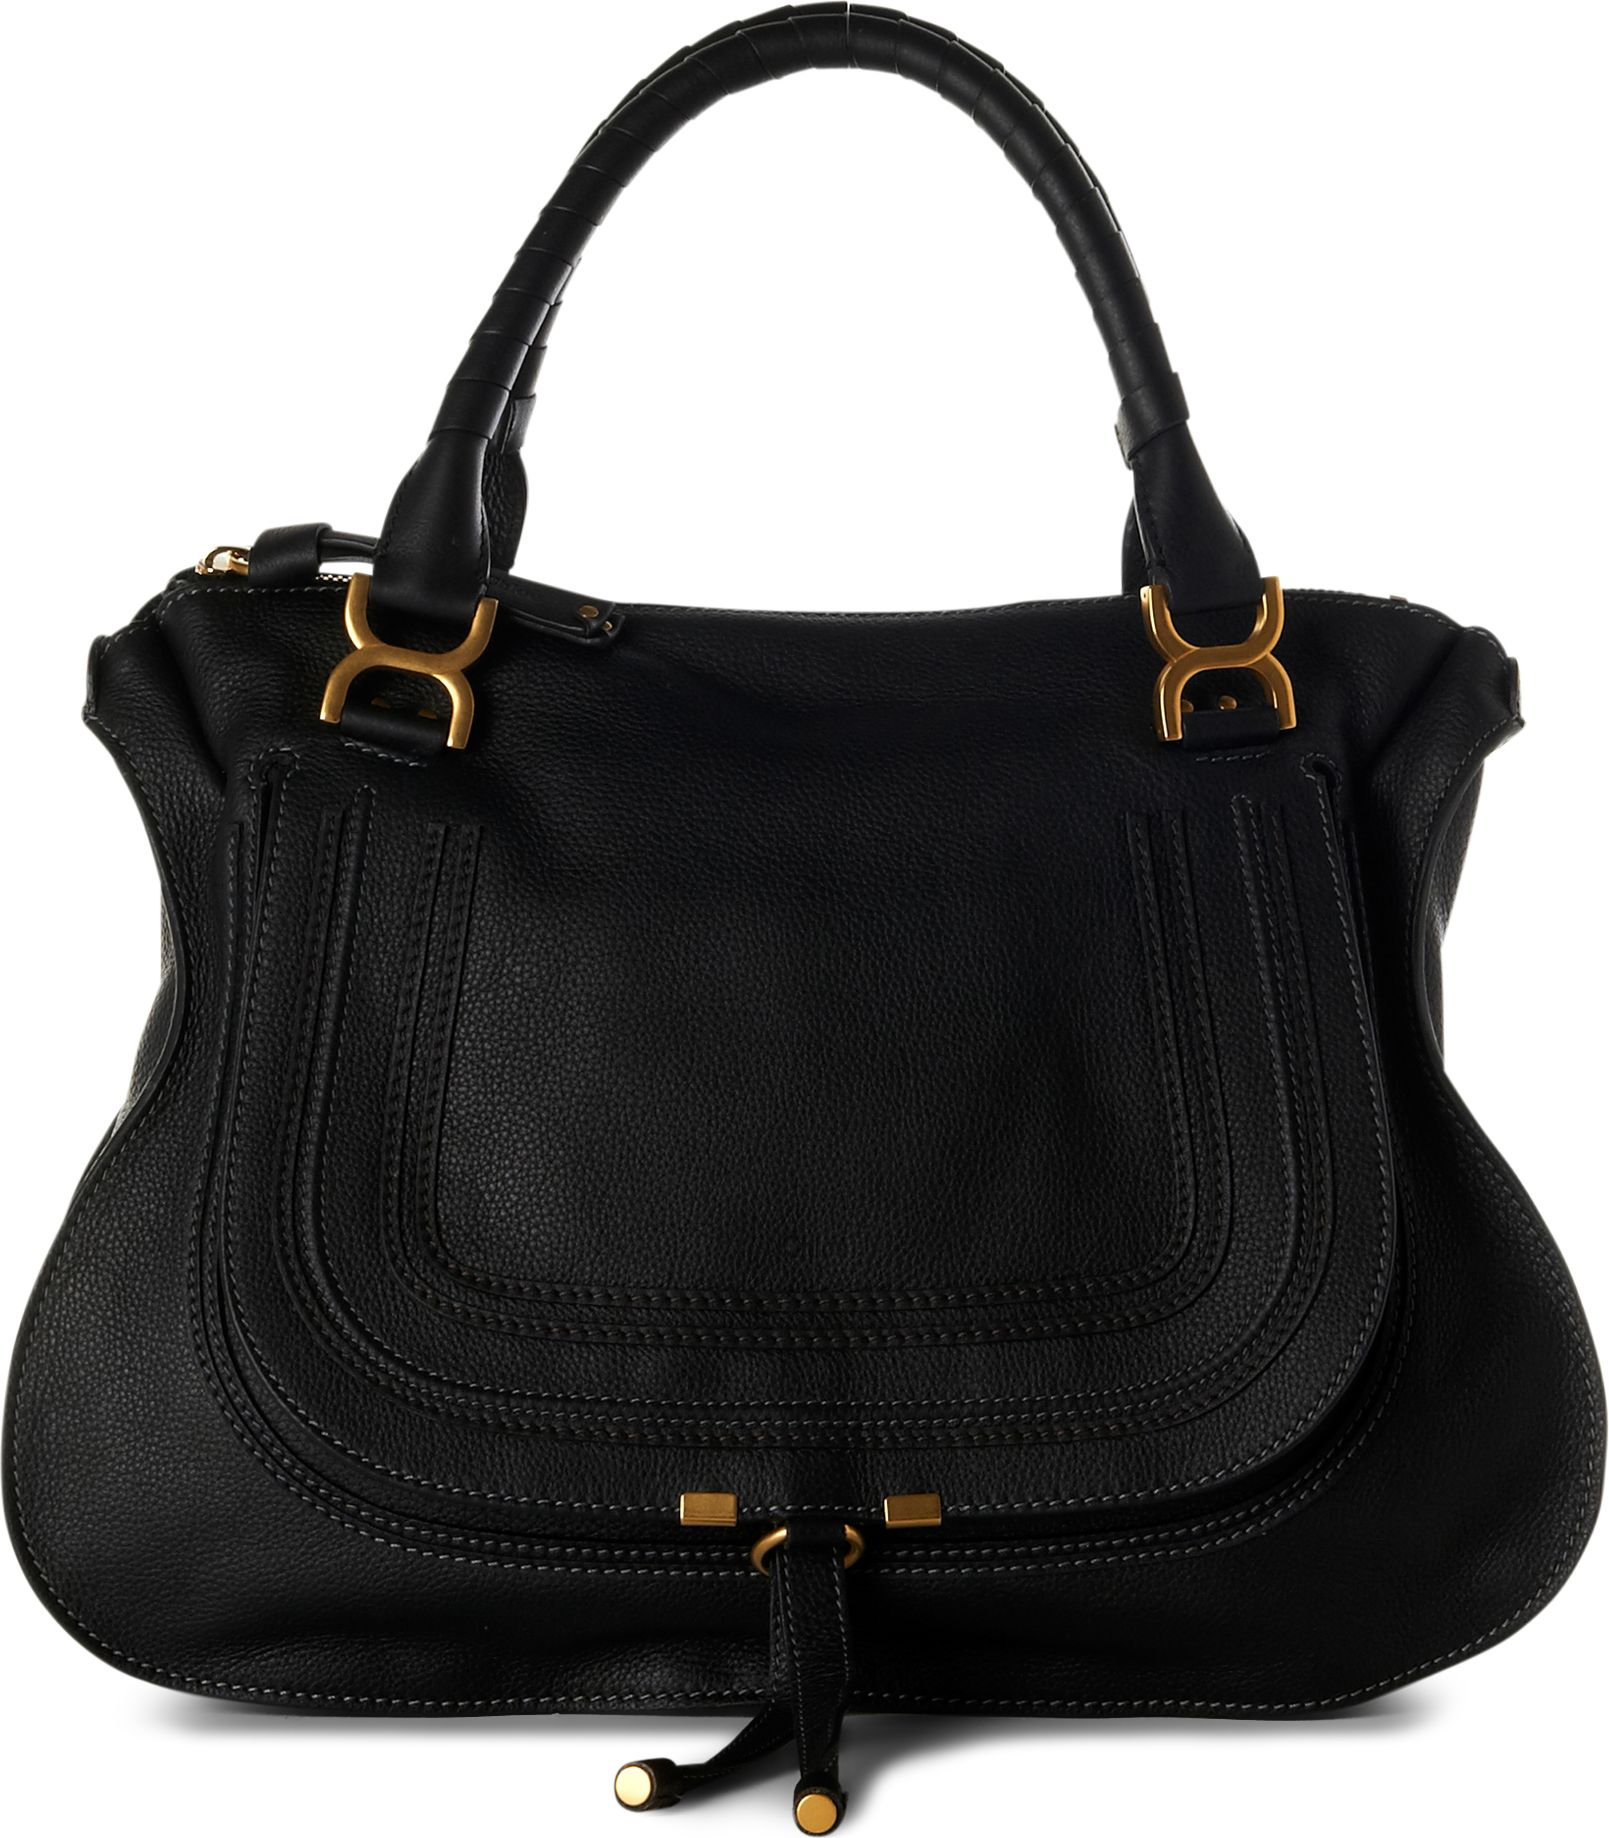 chlo marcie large shoulder bag in black lyst. Black Bedroom Furniture Sets. Home Design Ideas